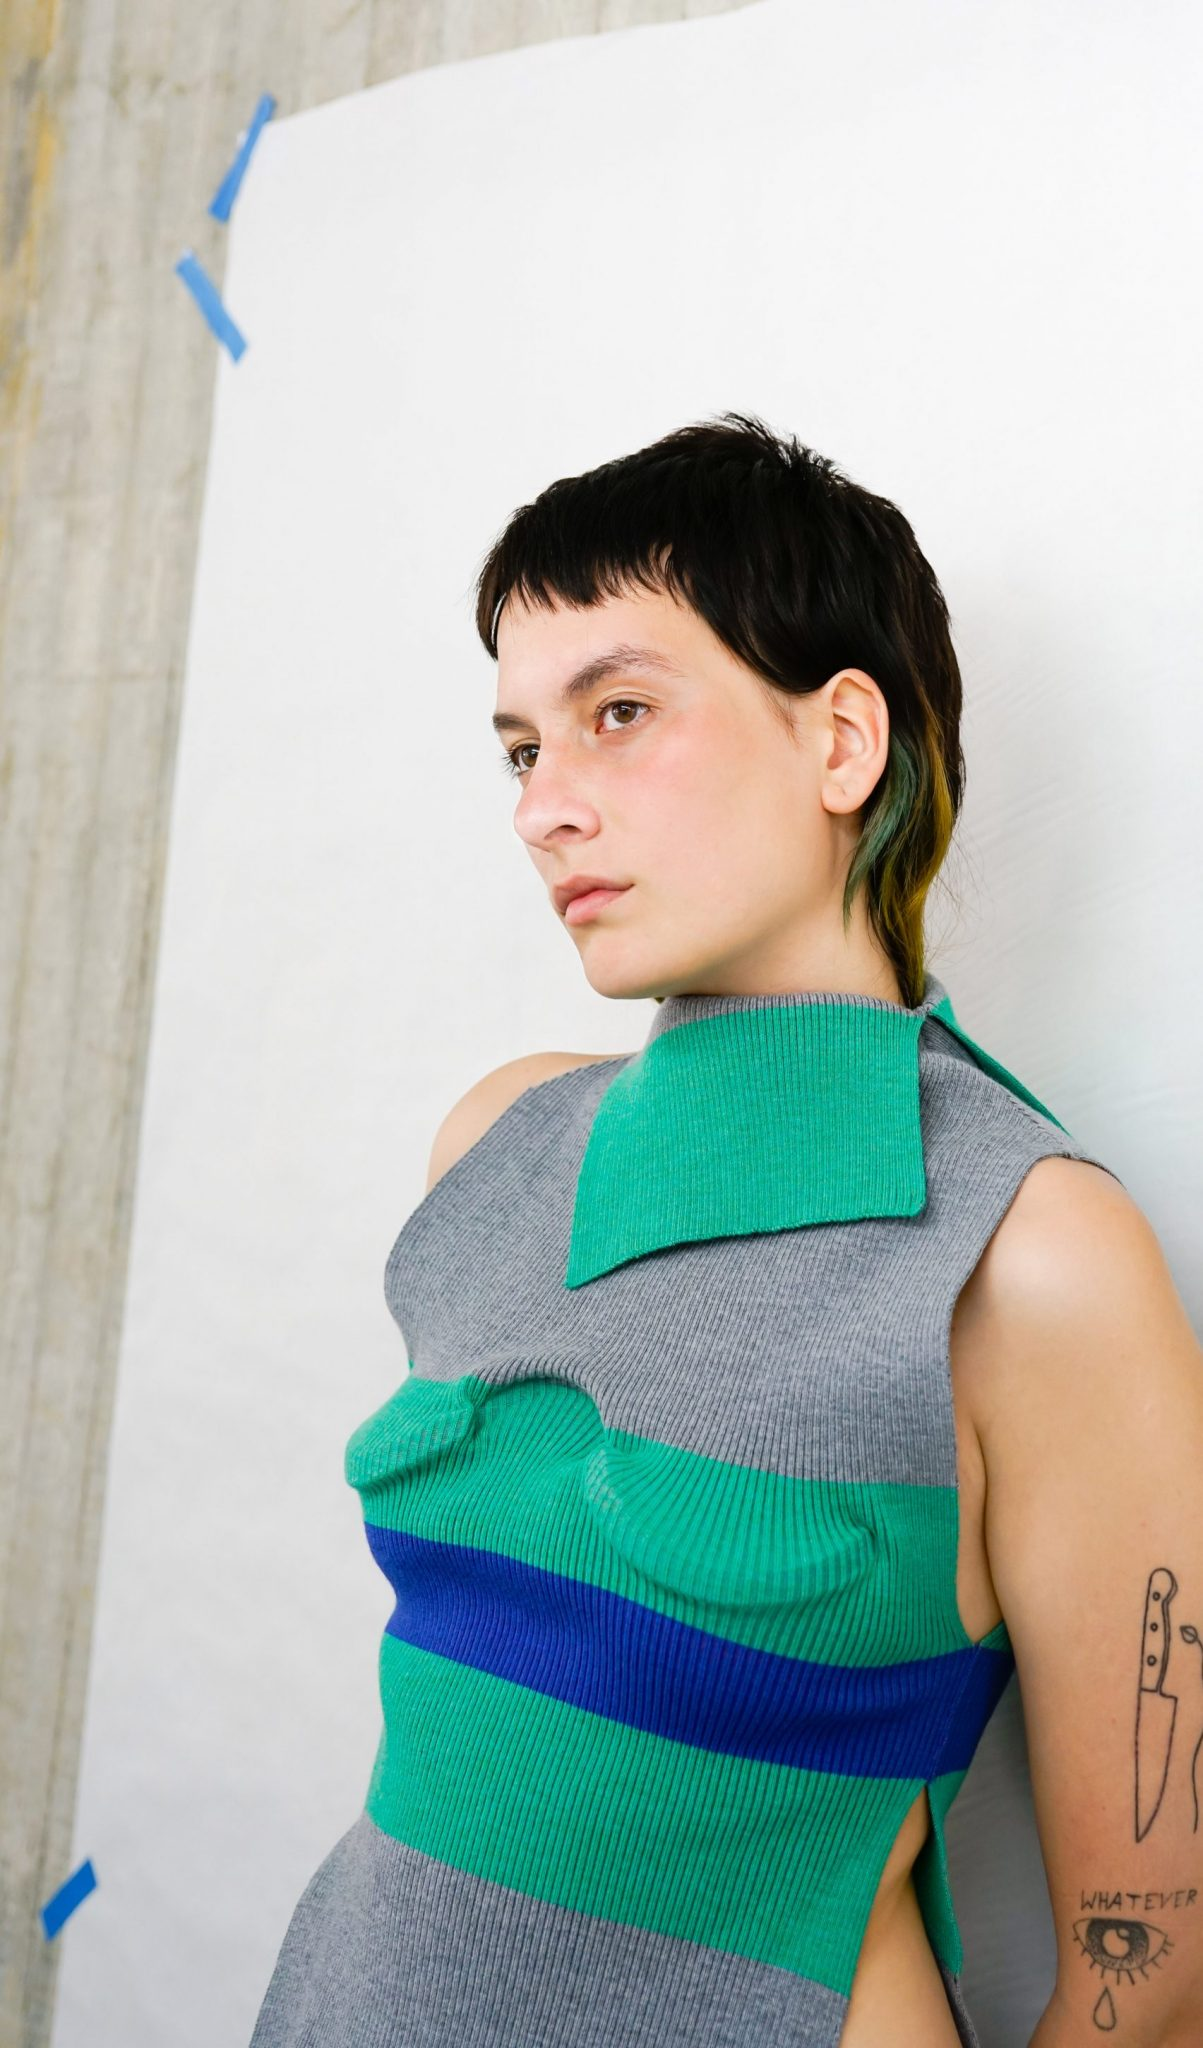 Sleeveless sweater created using 3D printing and fabrication techniques.Photo via RCA.